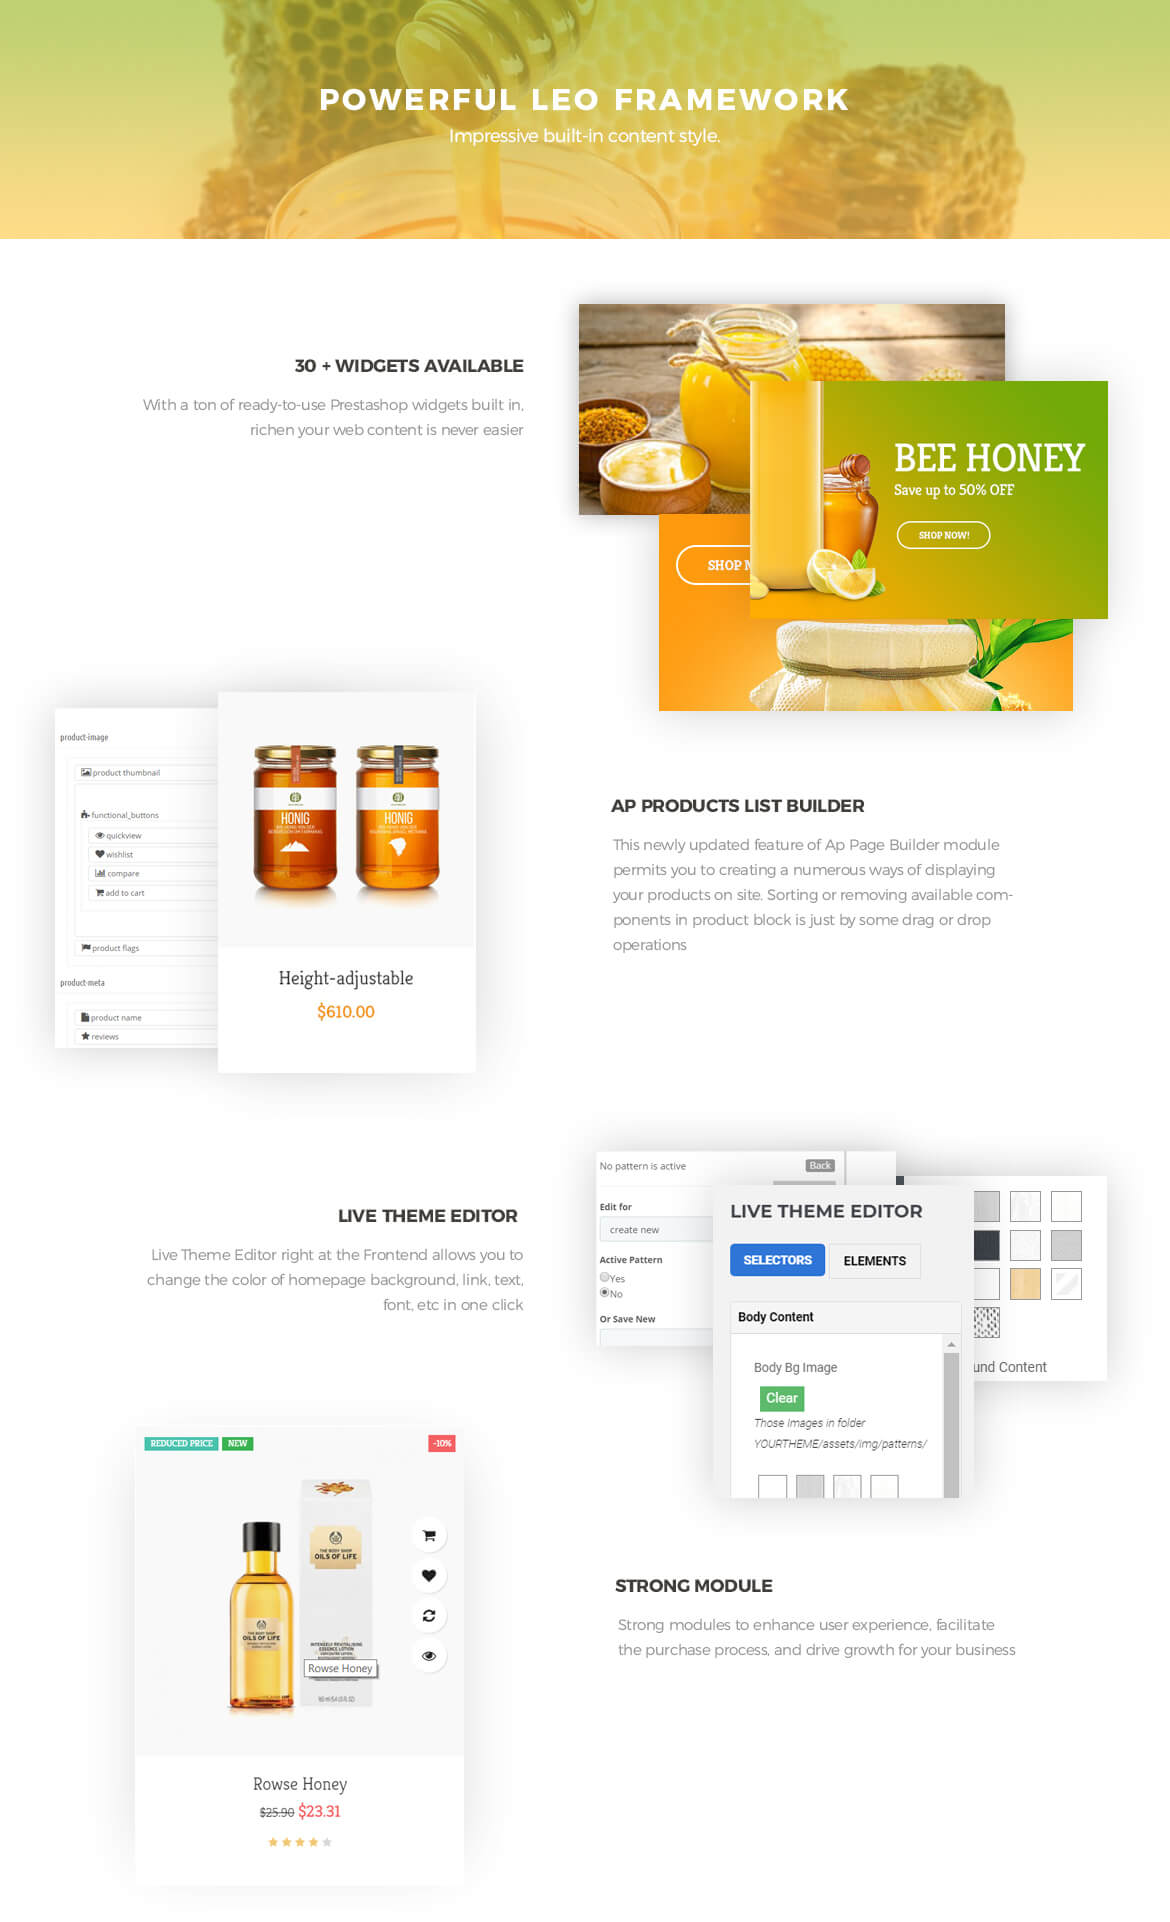 powerful prestashop framework - Bos Ocbee prestashop theme - honey, food, beauty store